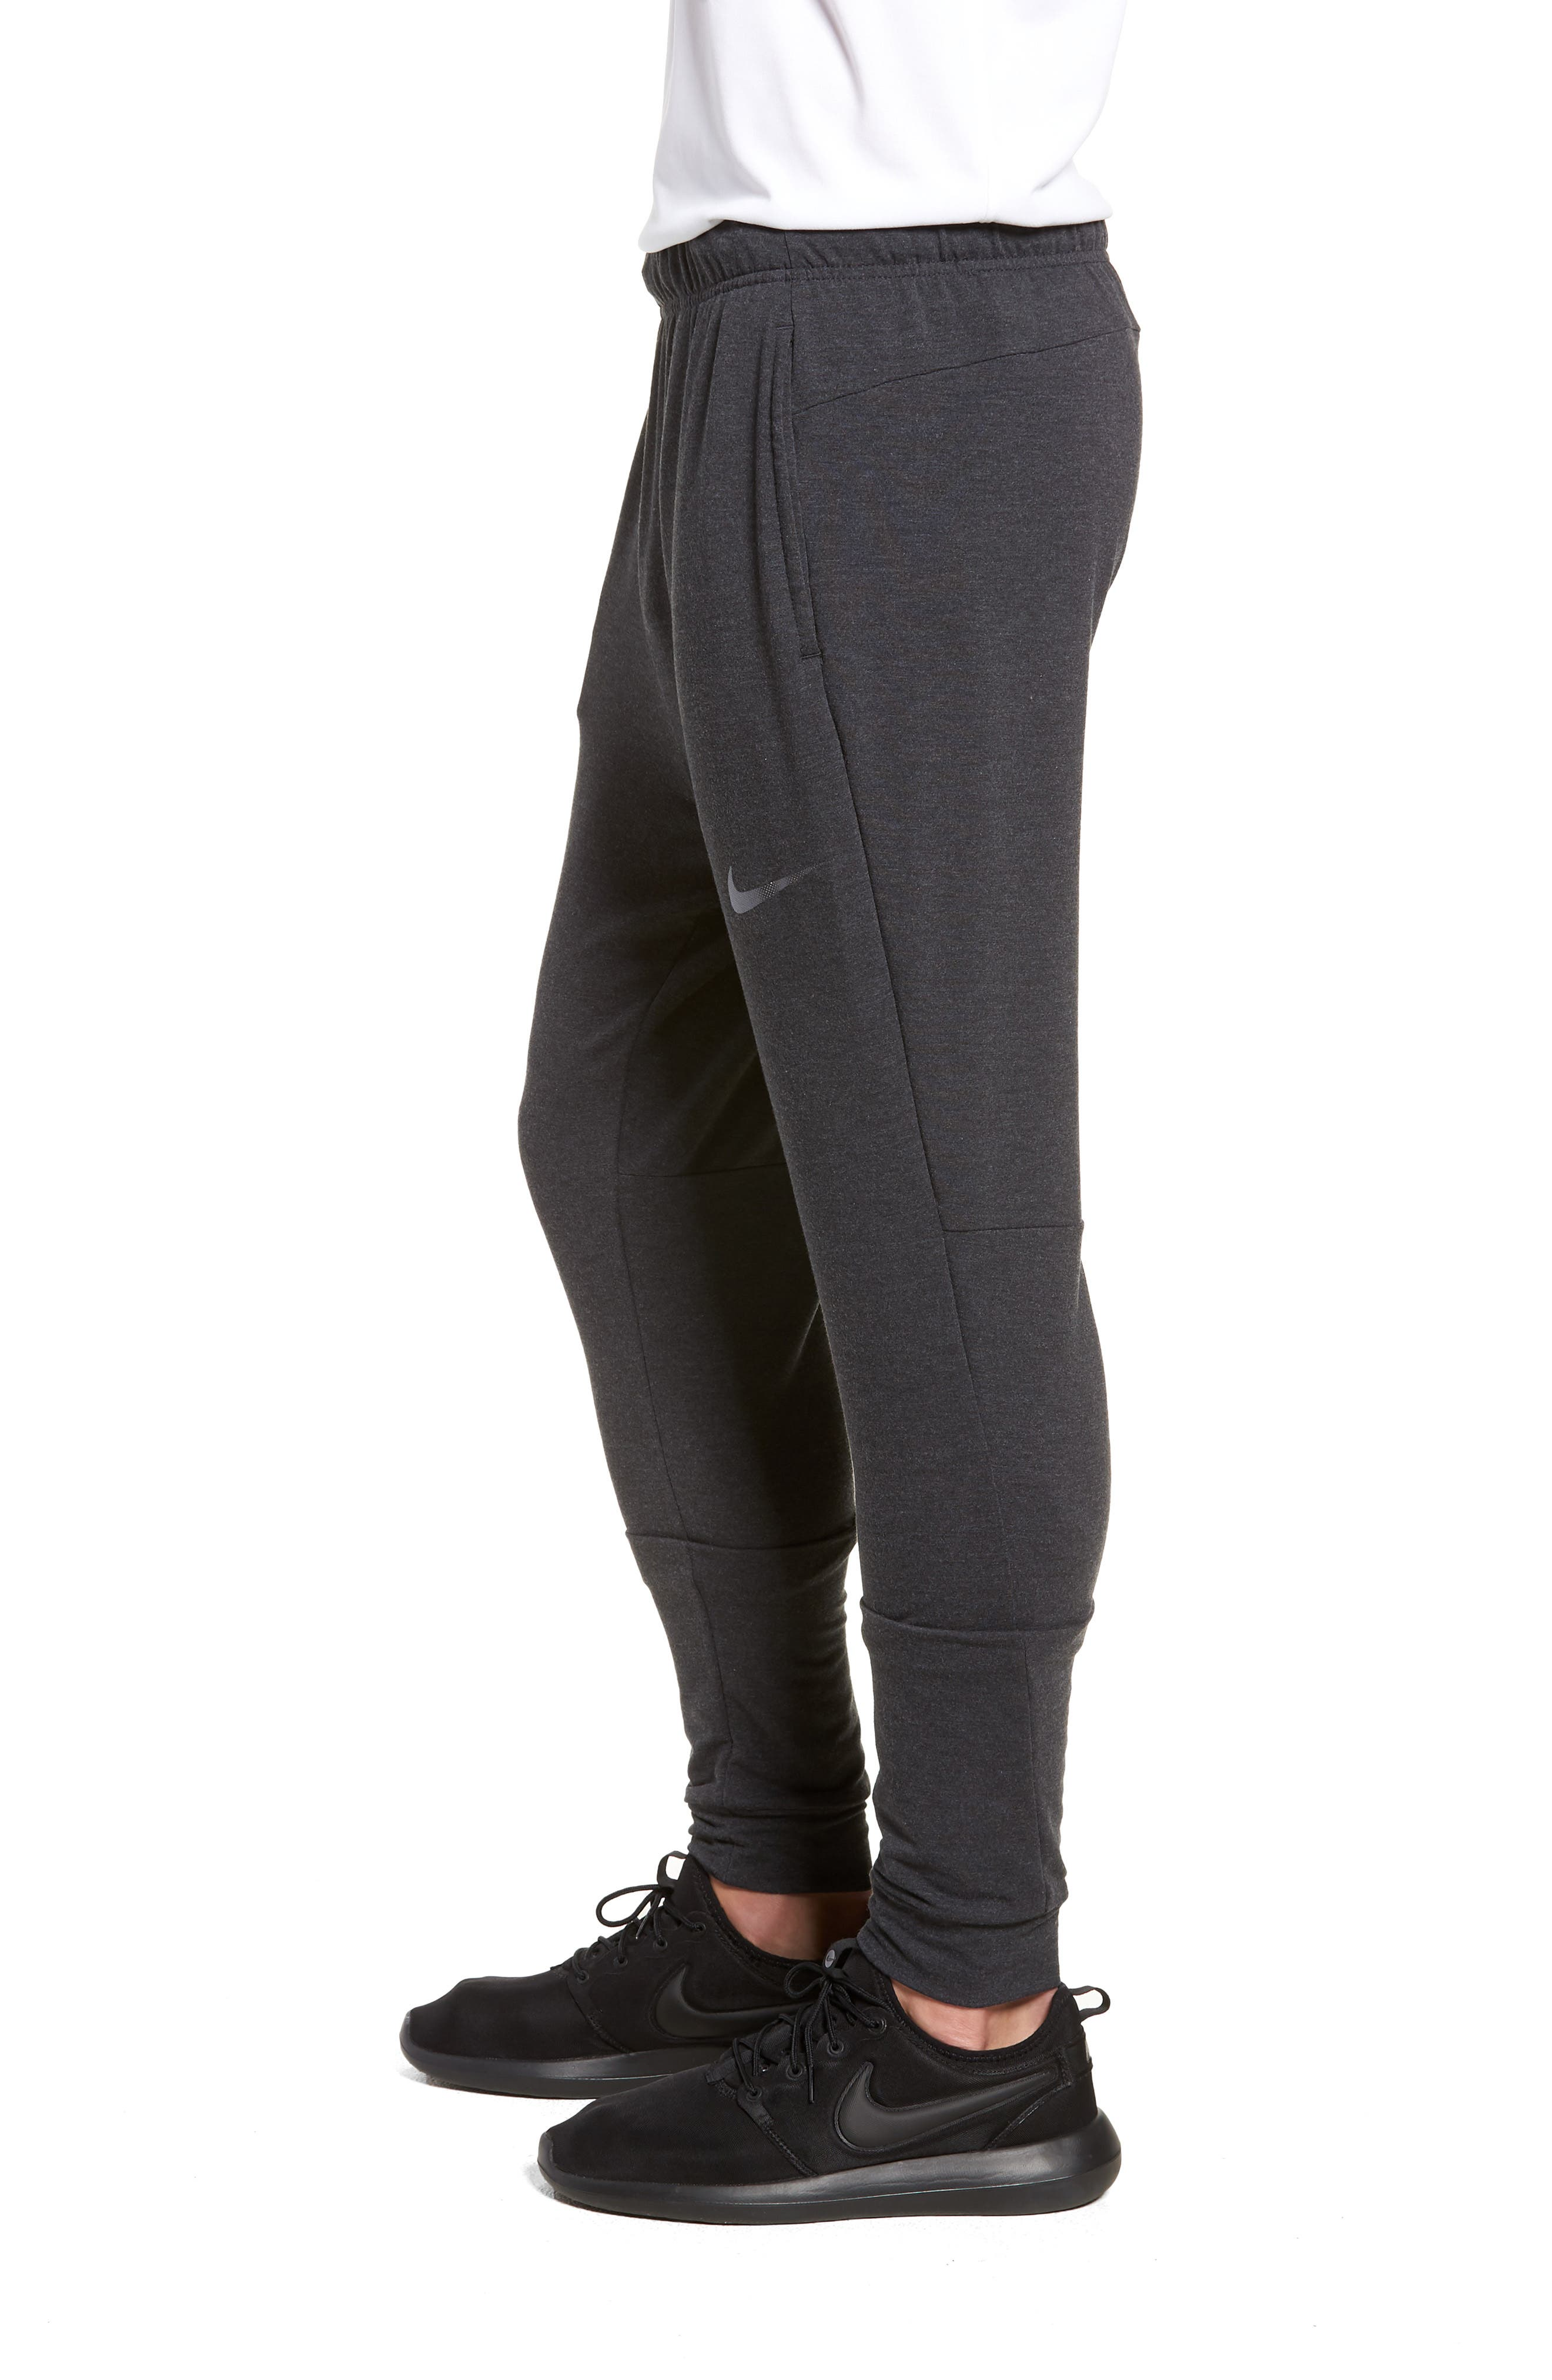 Dry Training Pants,                             Alternate thumbnail 3, color,                             BLACK/ WHITE/ HEMATITE